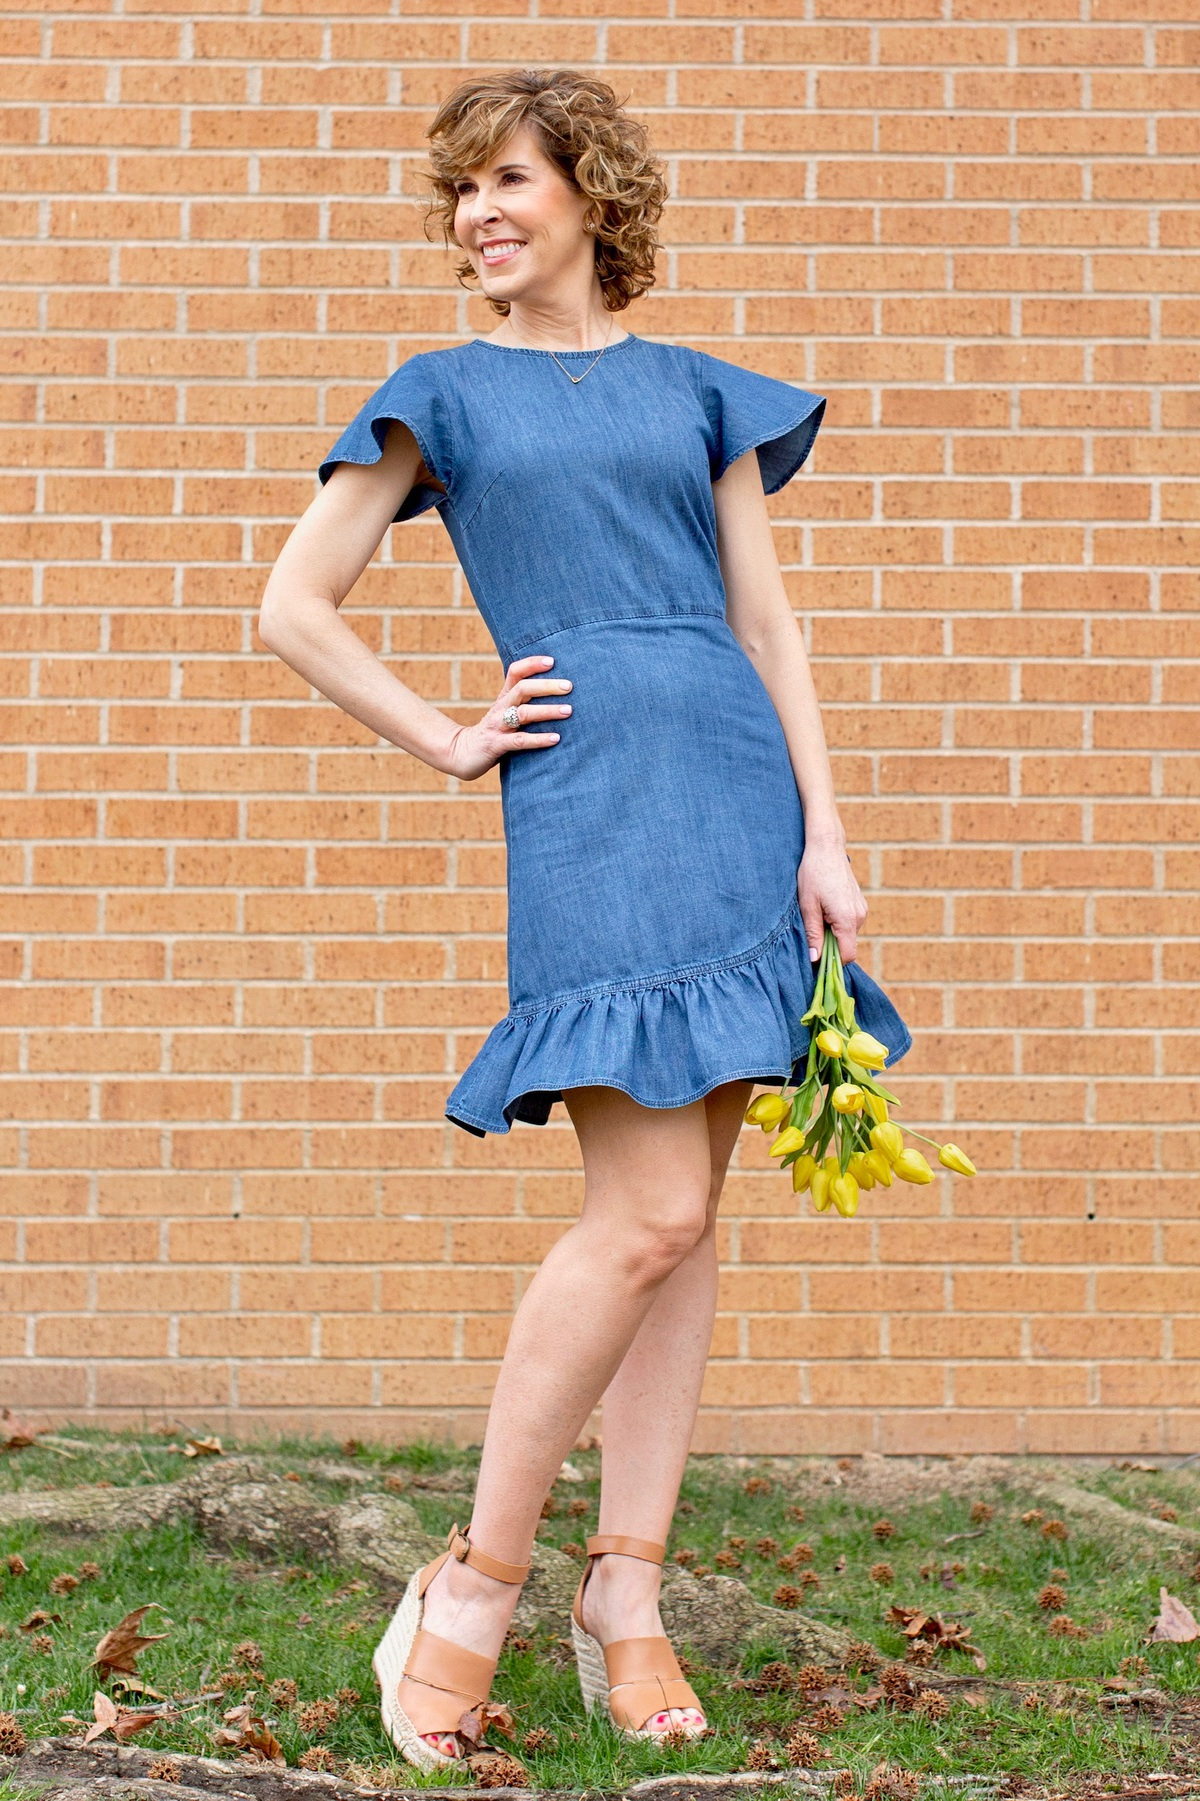 woman over 50 wearing blue chambray dress holding yellow flowers standing in front of a brick wall